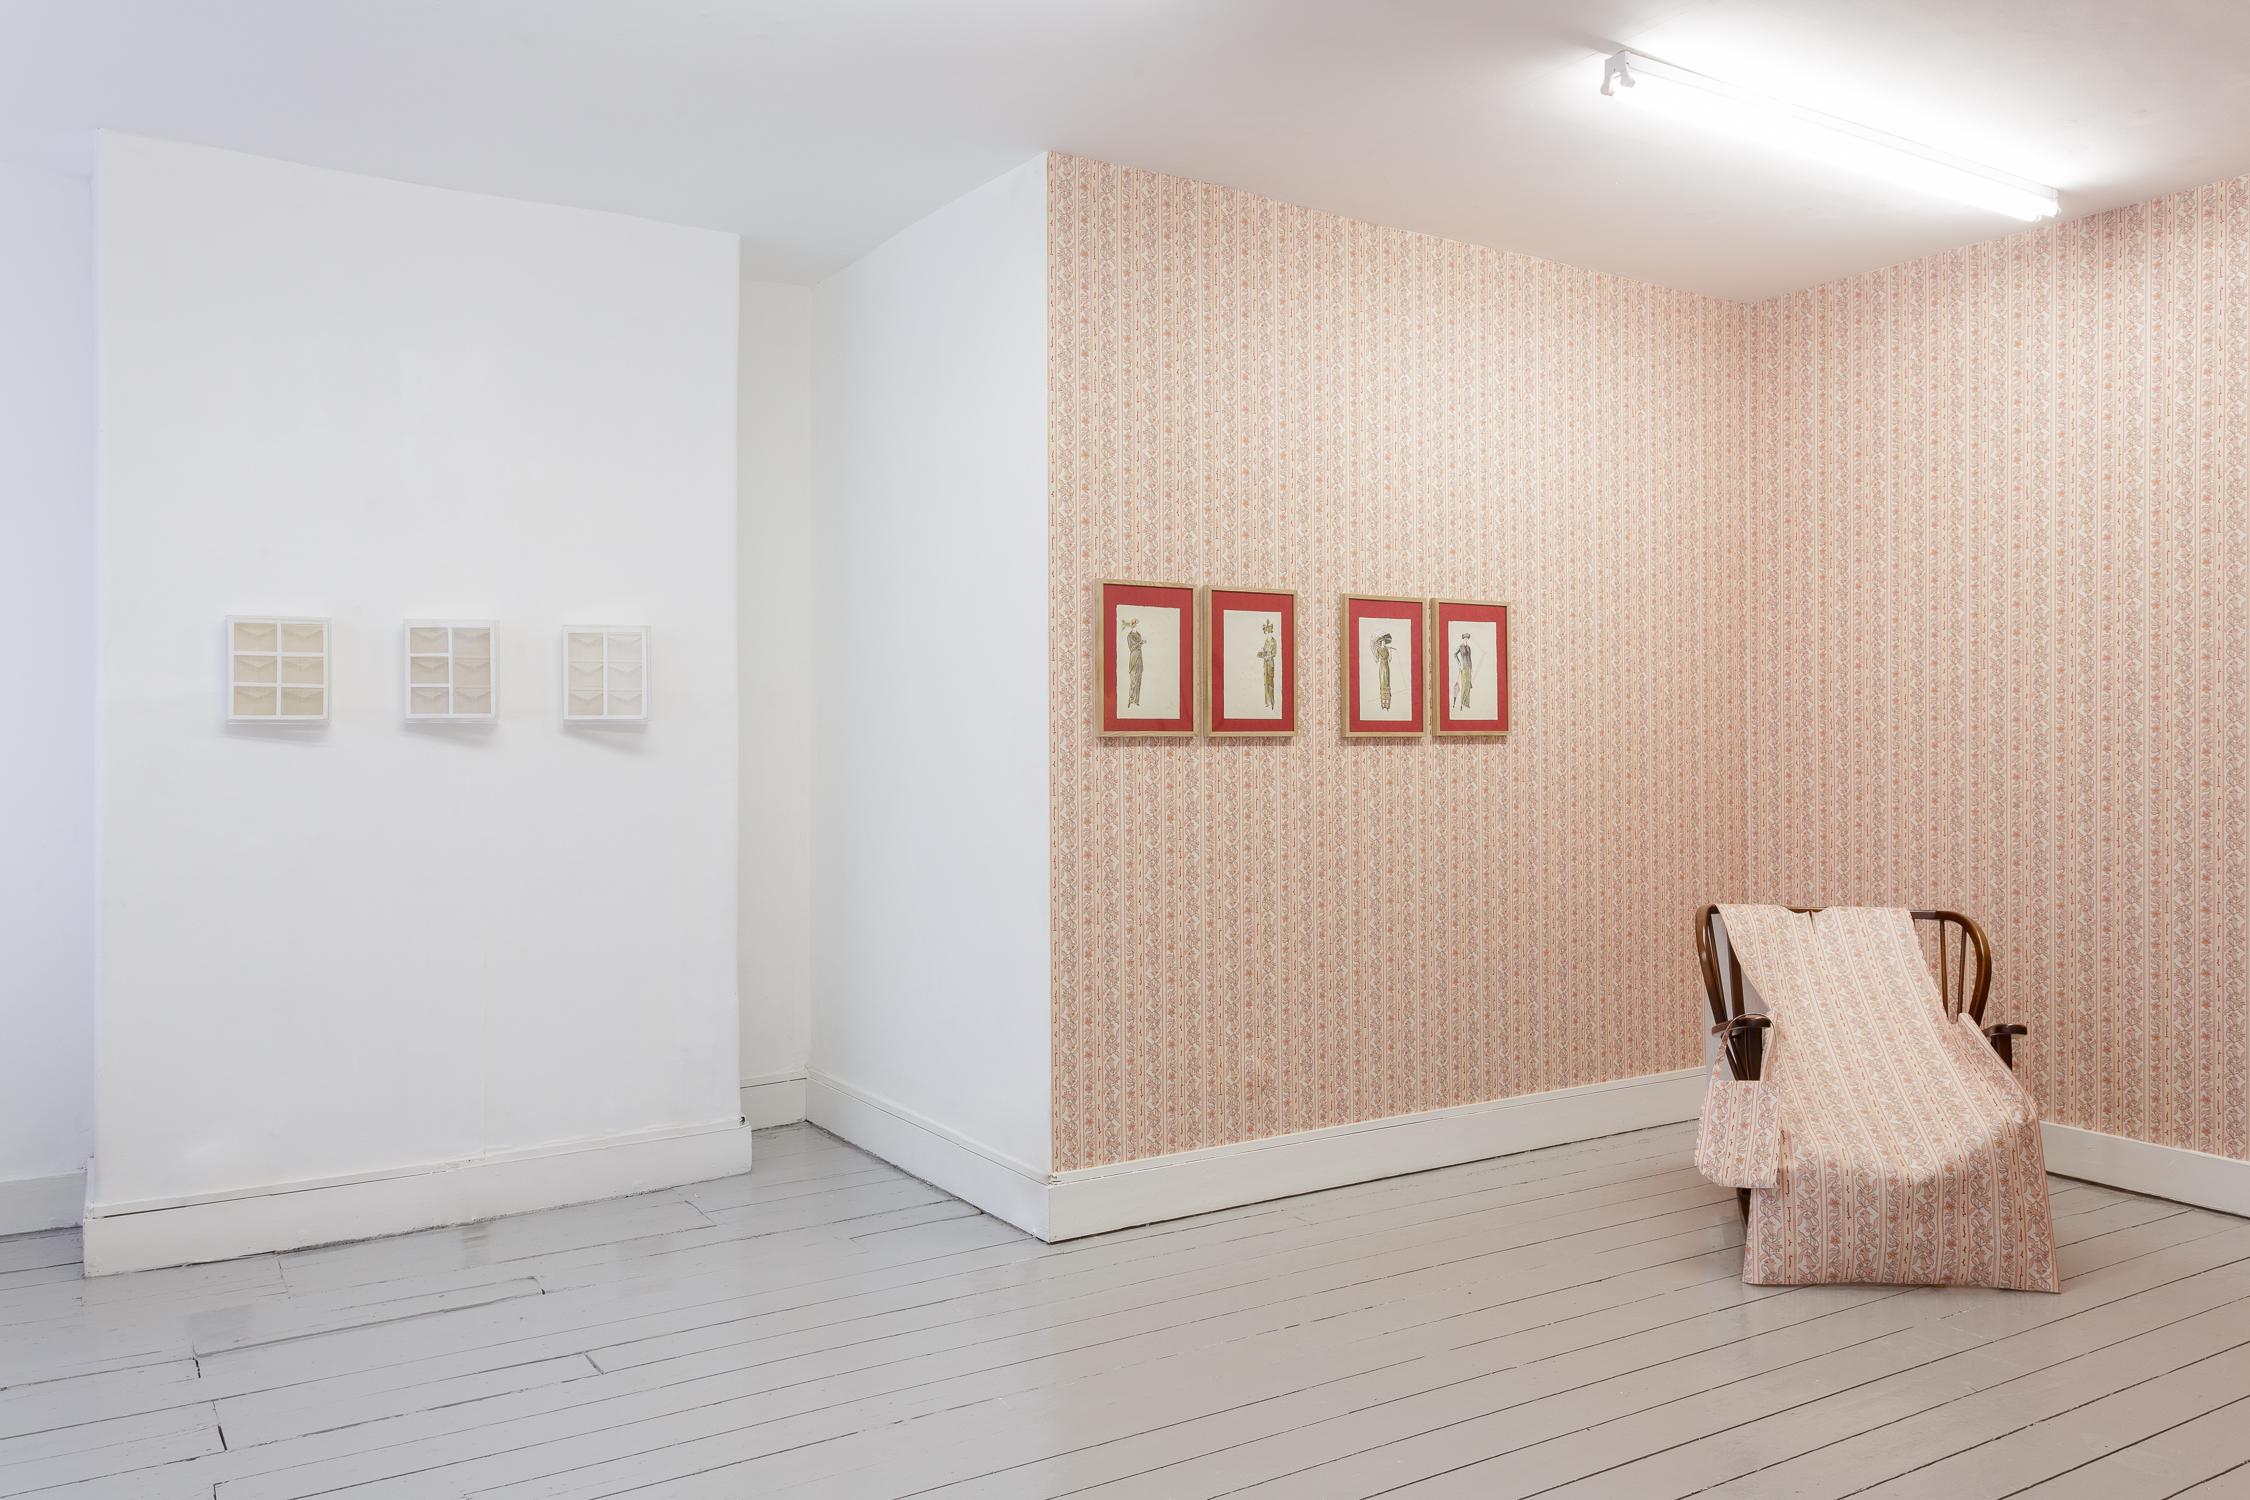 Tomaso Binga, A Silenced Victory, installation view. Photo: Tim Bowditch